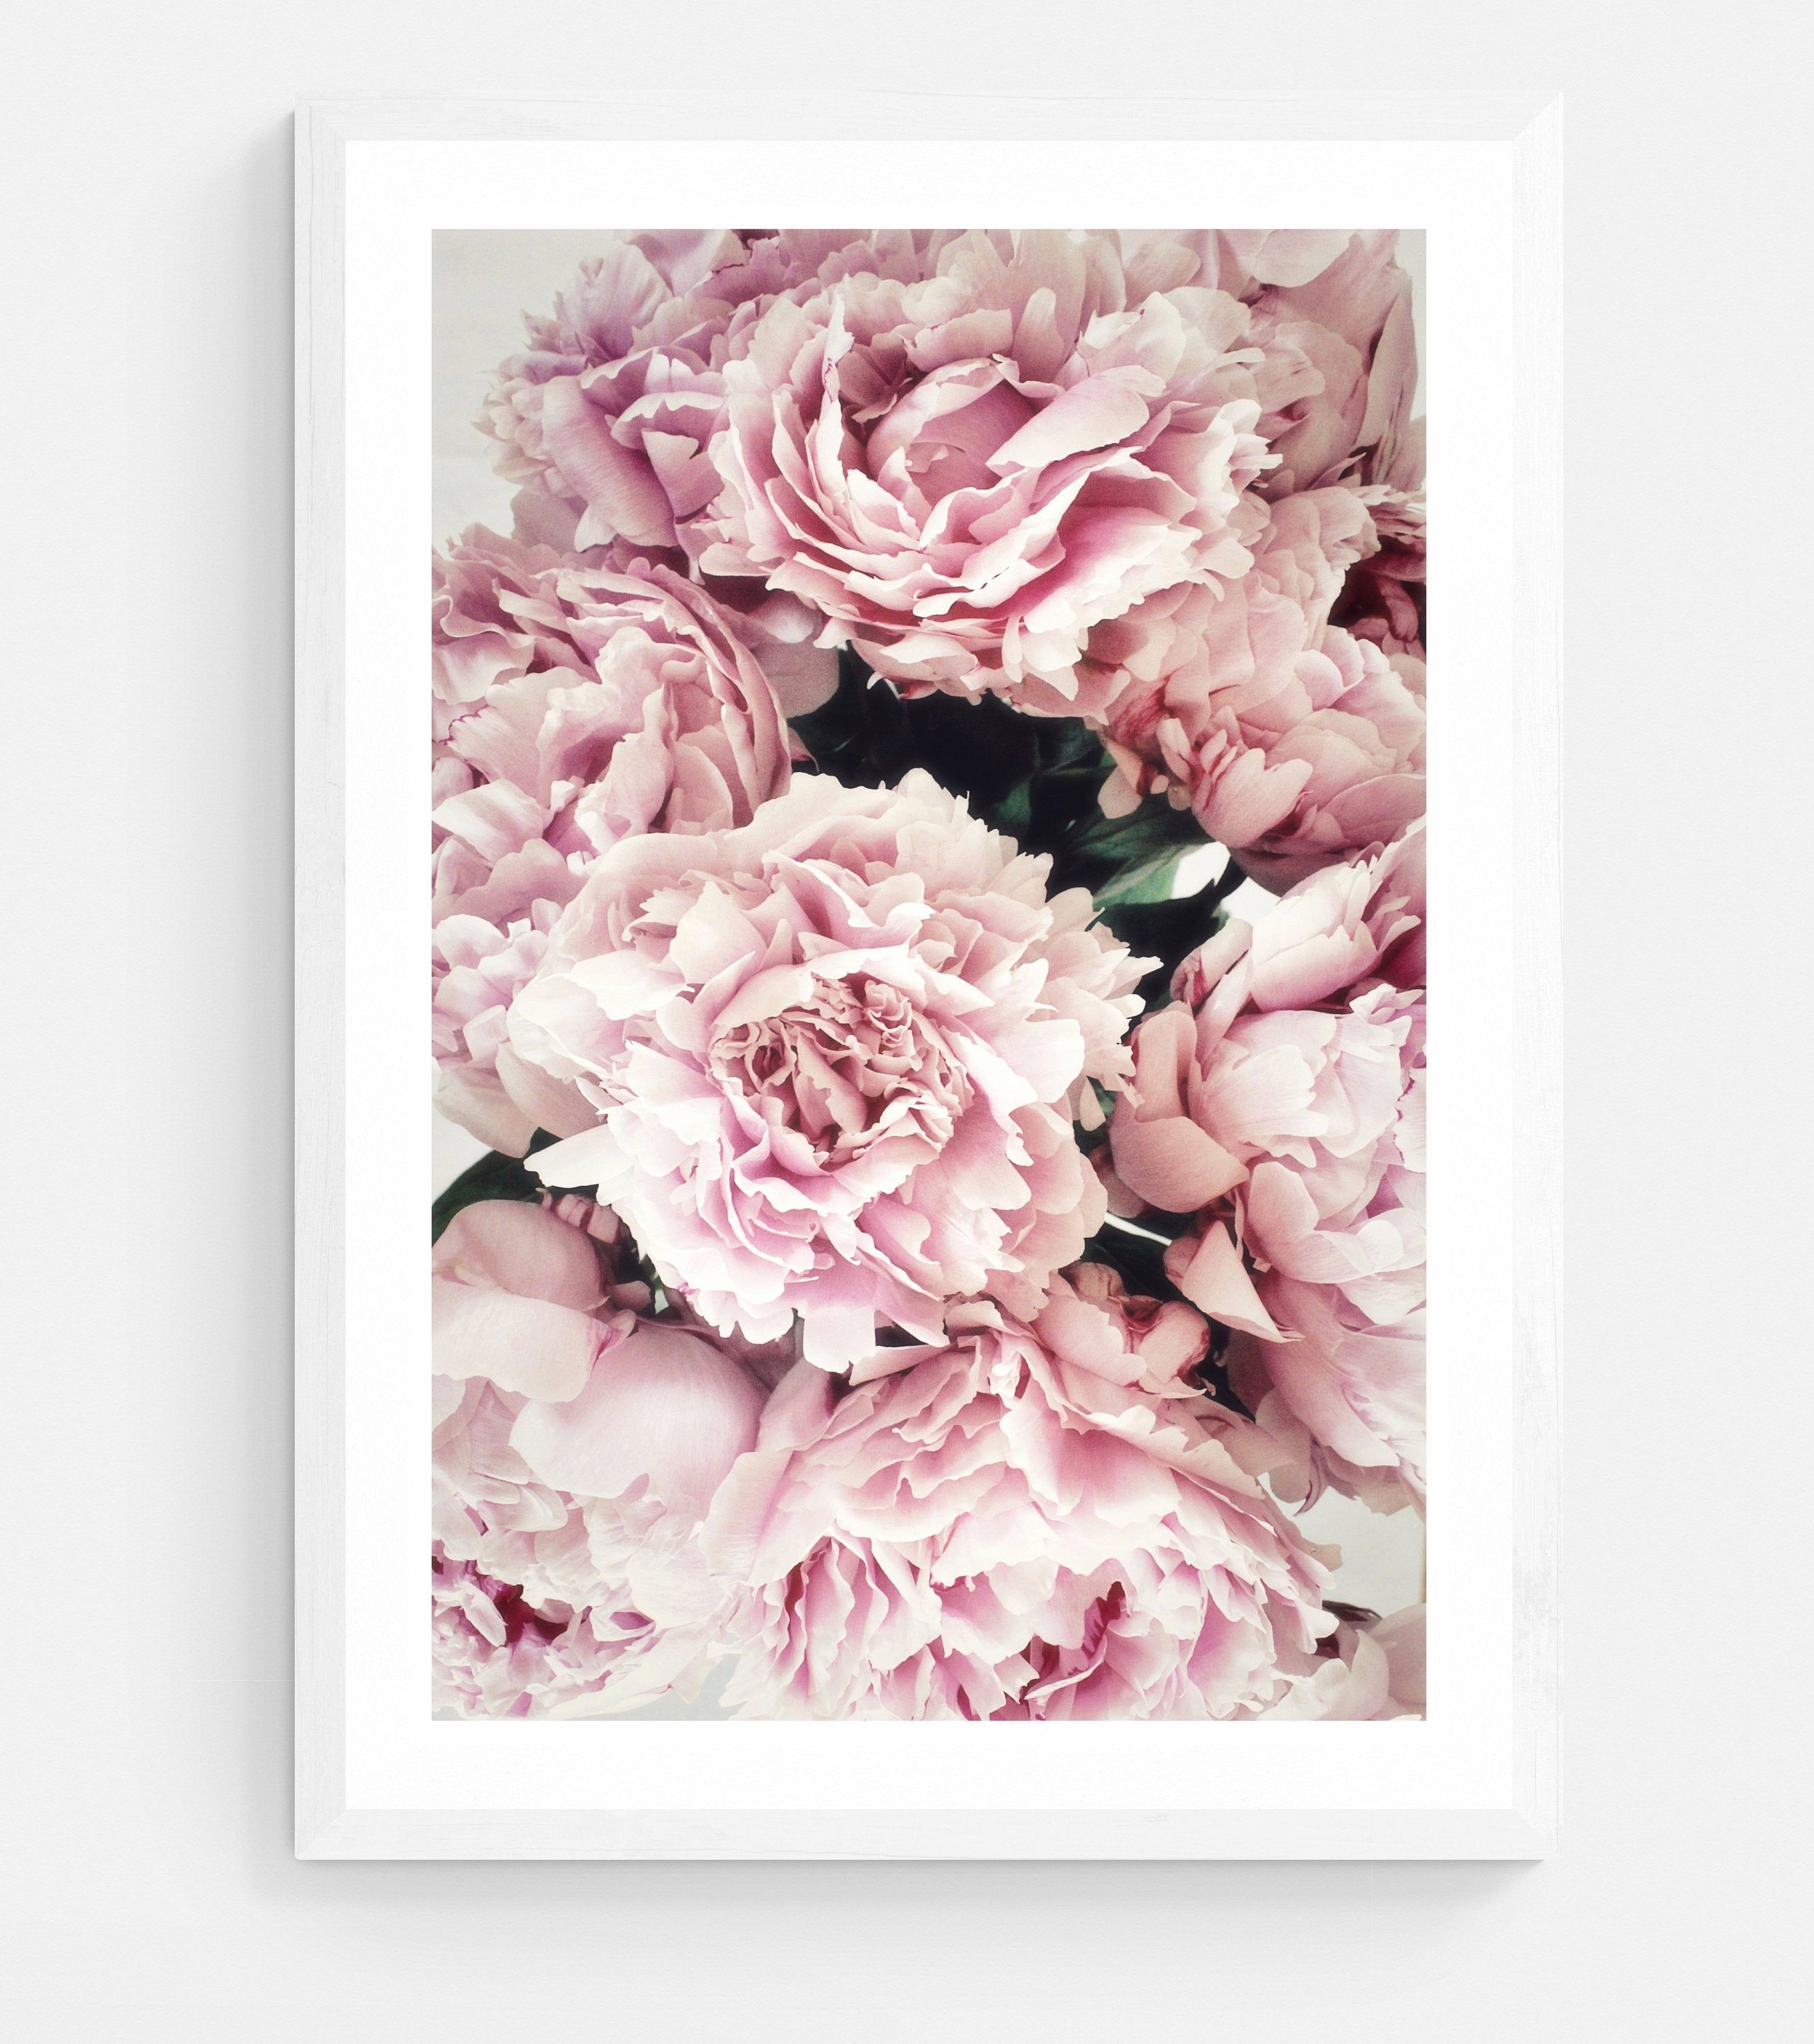 Peony Print Peonies Wall Art Pastel Pink Pink Peony Print Printed And Shipped Flower Photography Poster Print Scandinavian Print In 2020 Fine Arts Posters Pink Peonies Print Peony Print